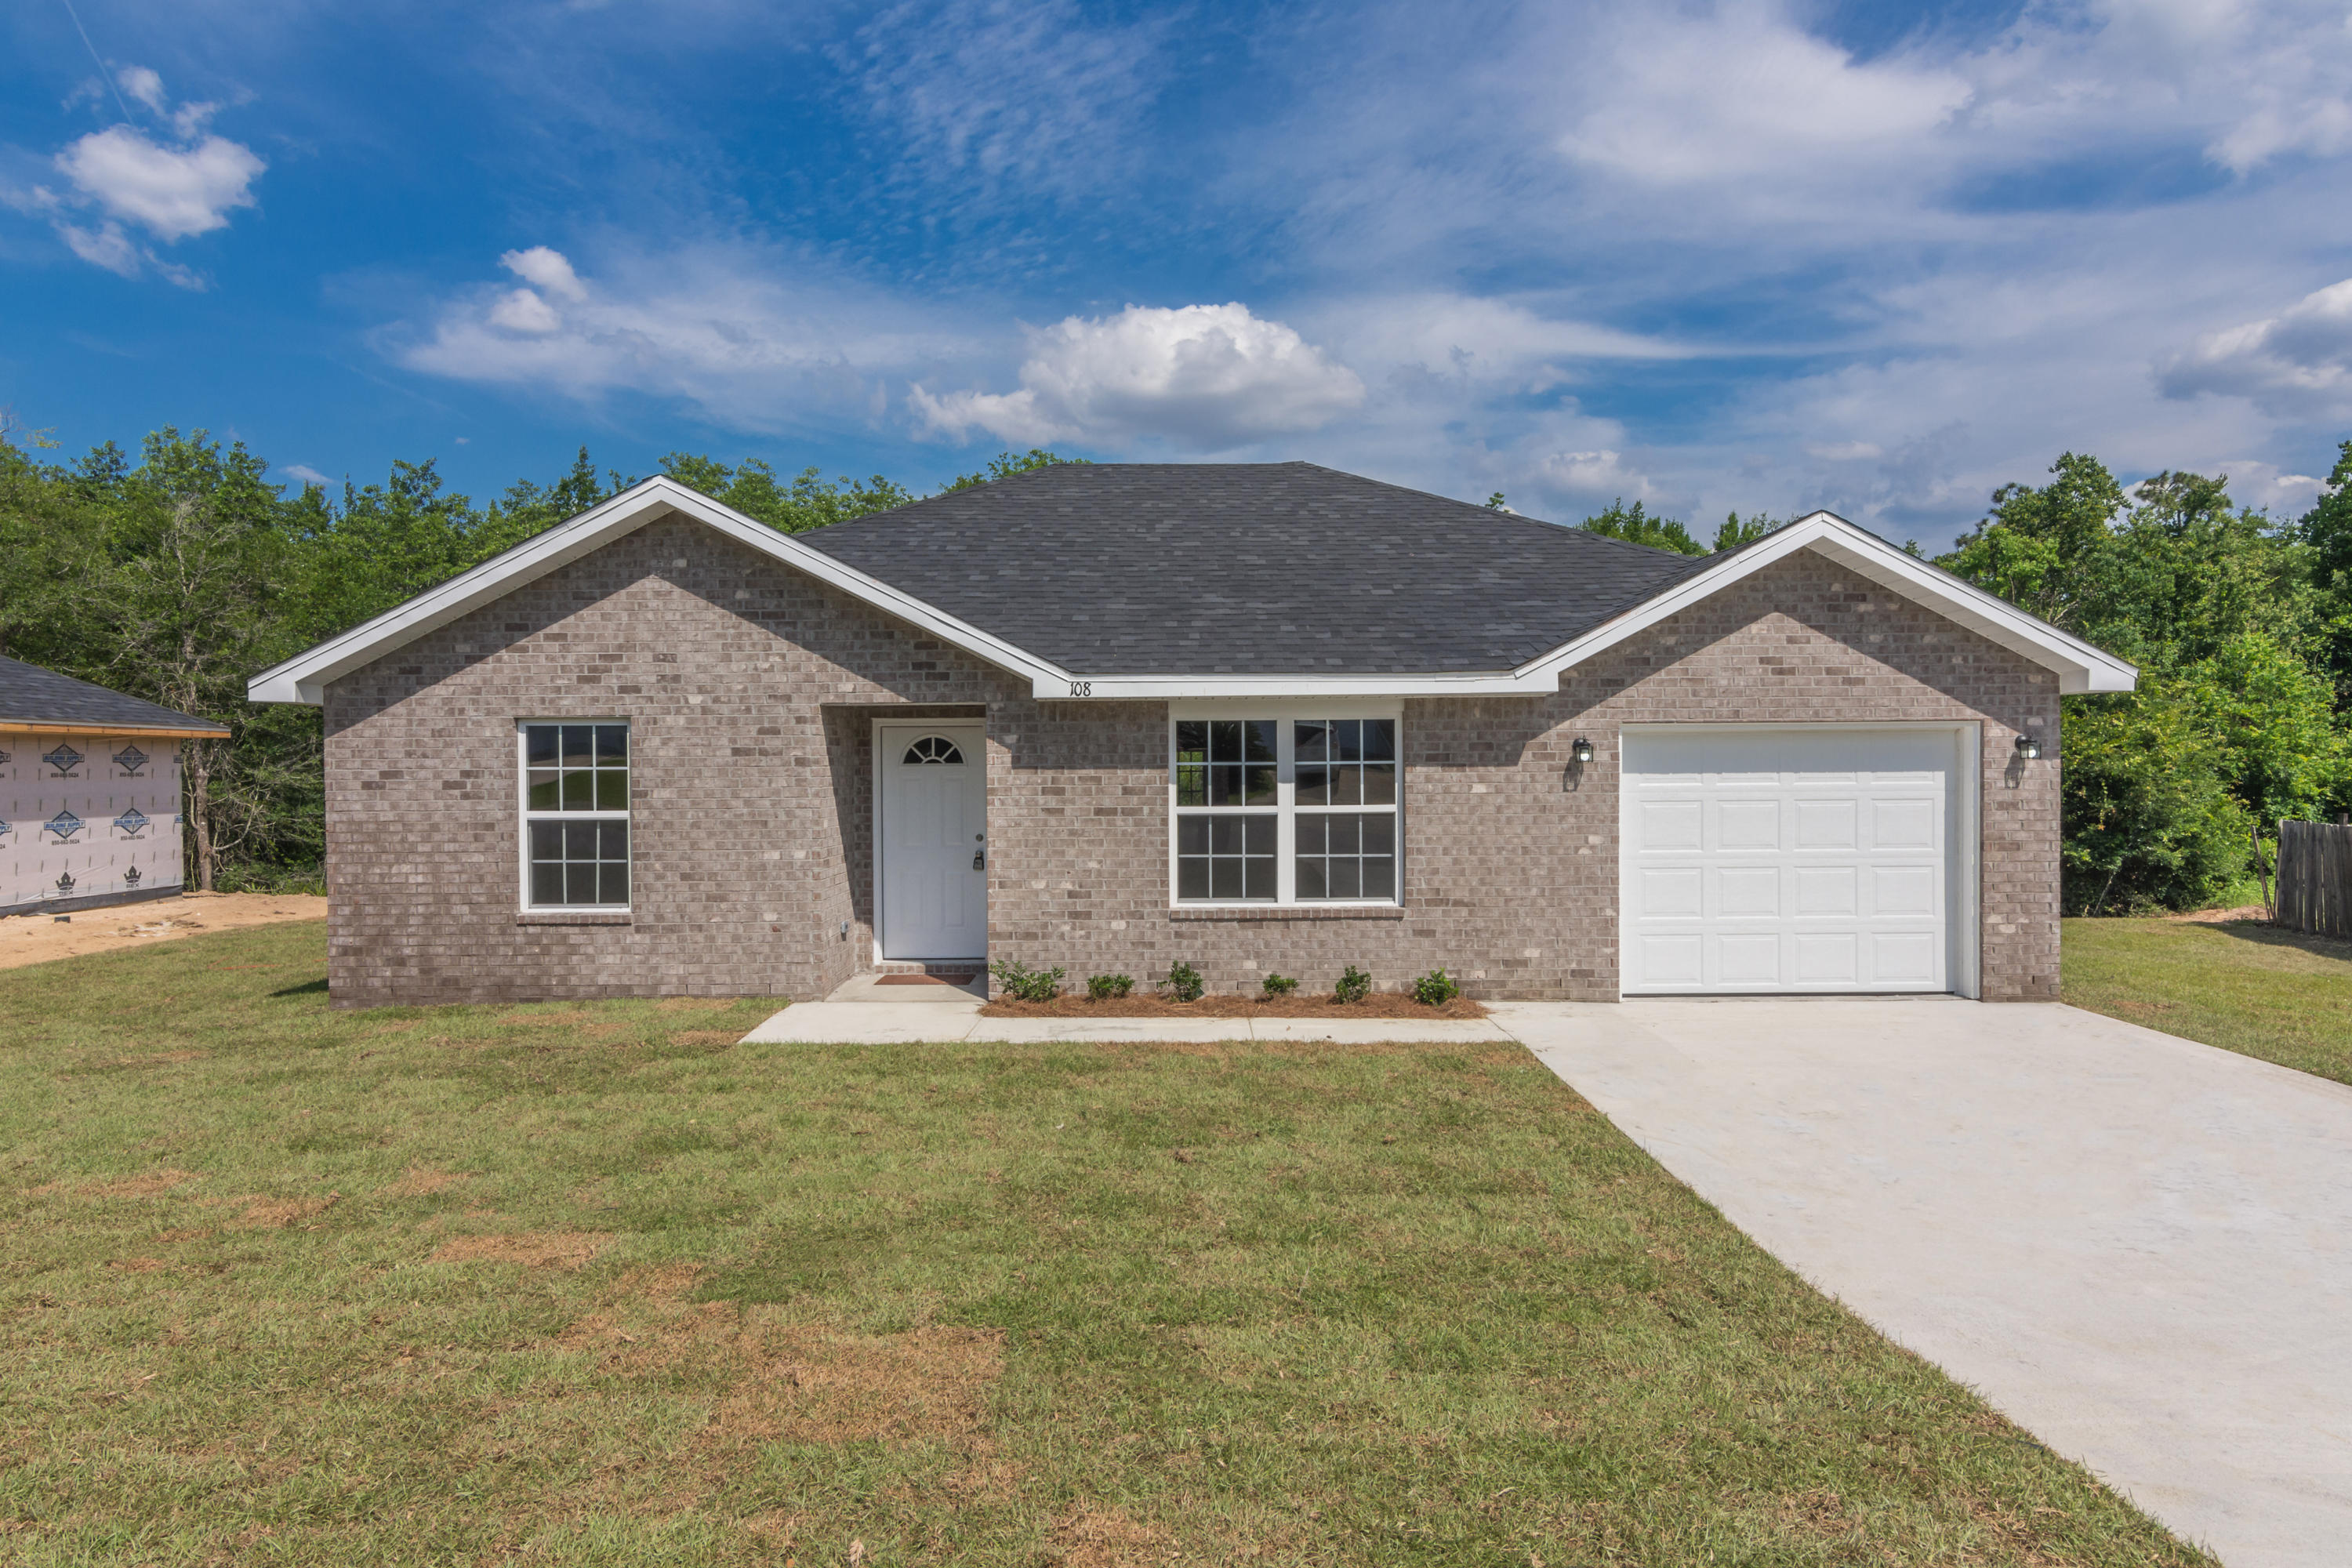 Photo of home for sale at 517 Grand Ridge, Crestview FL